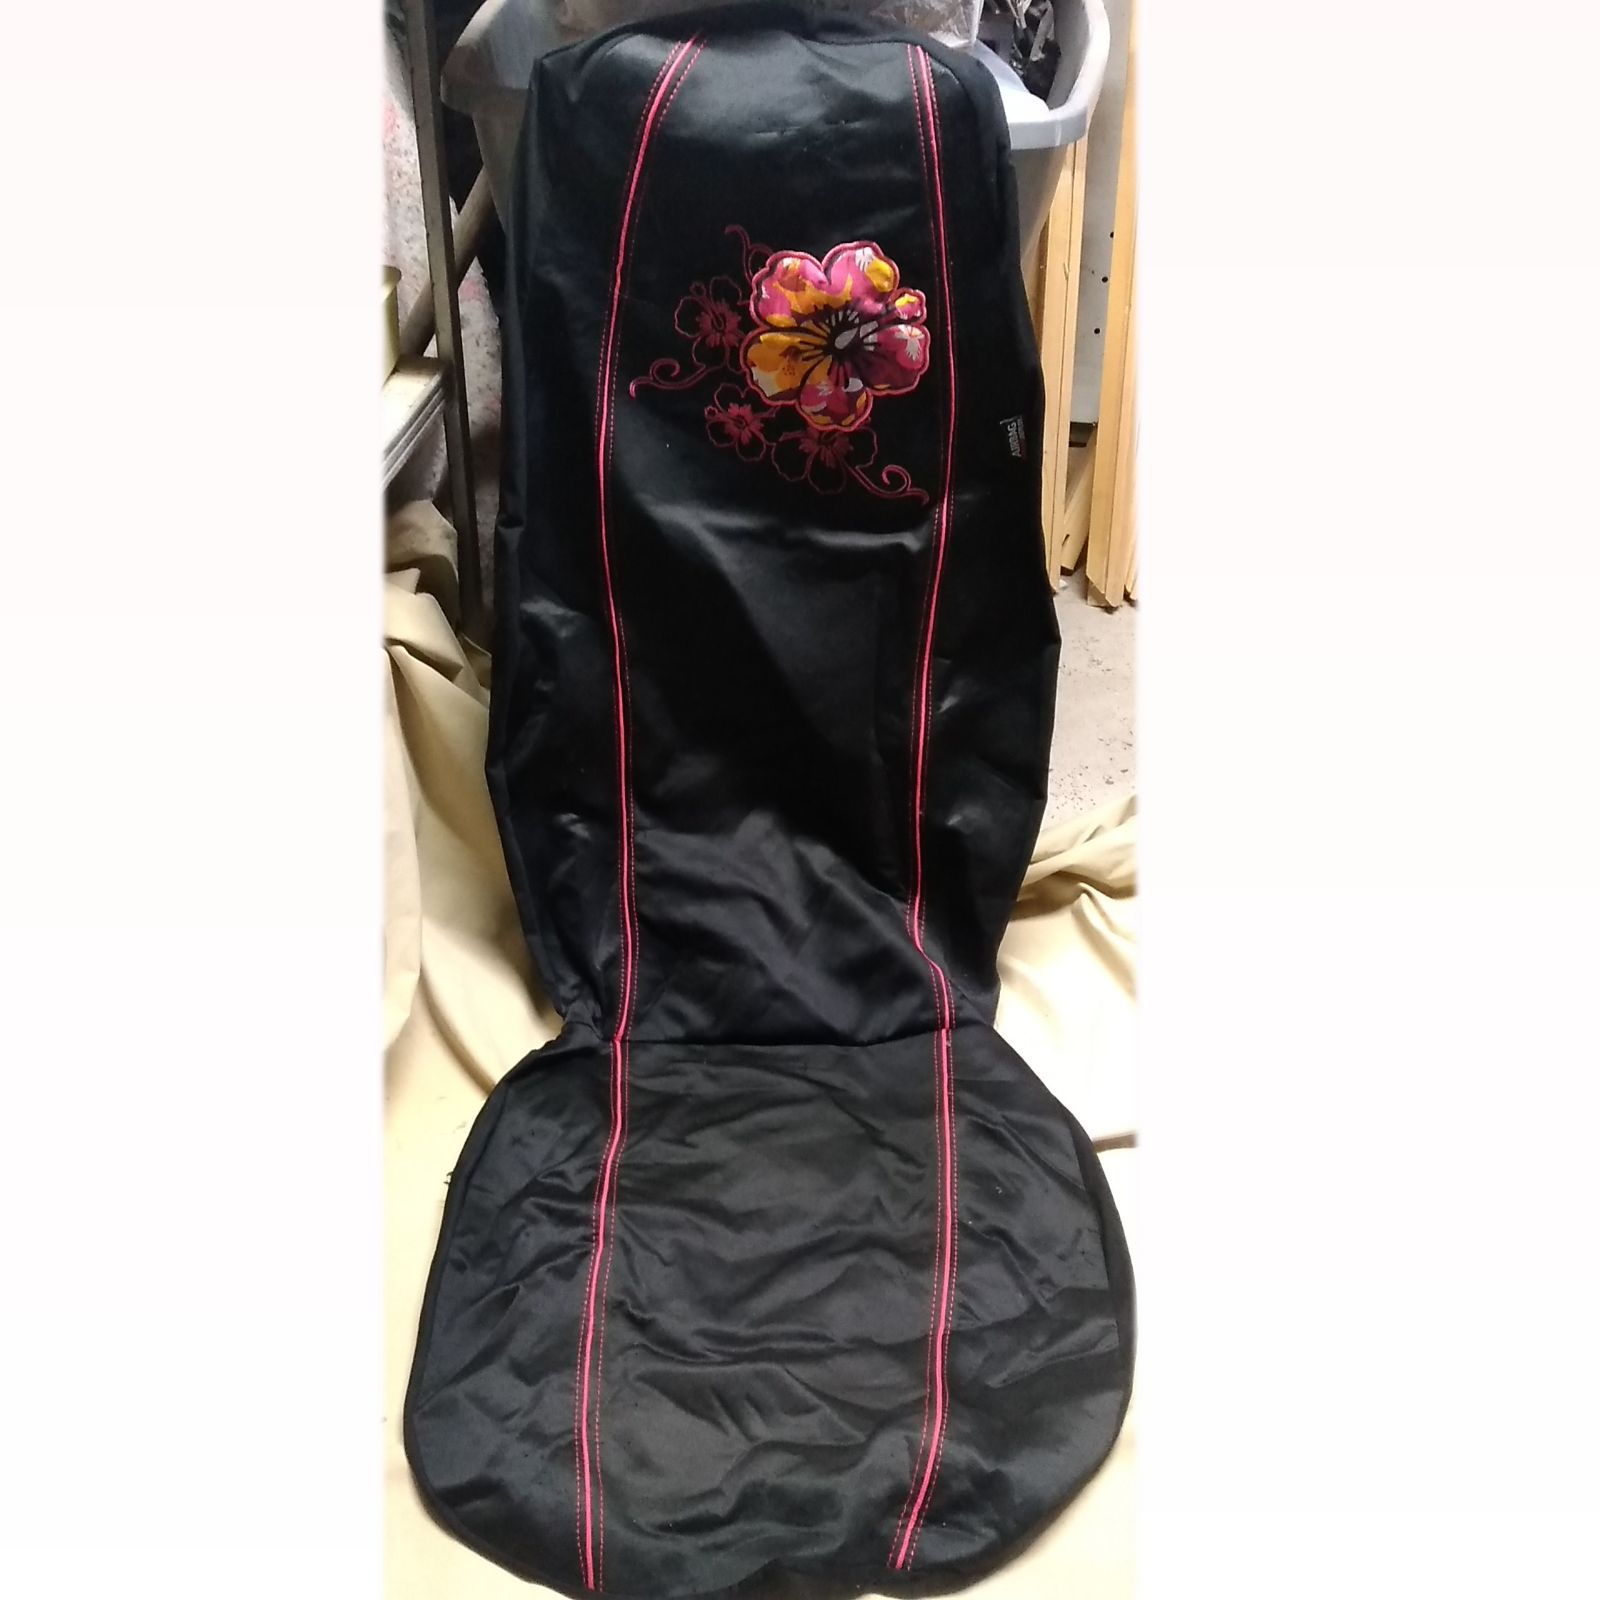 Kraco Car Seat Cover